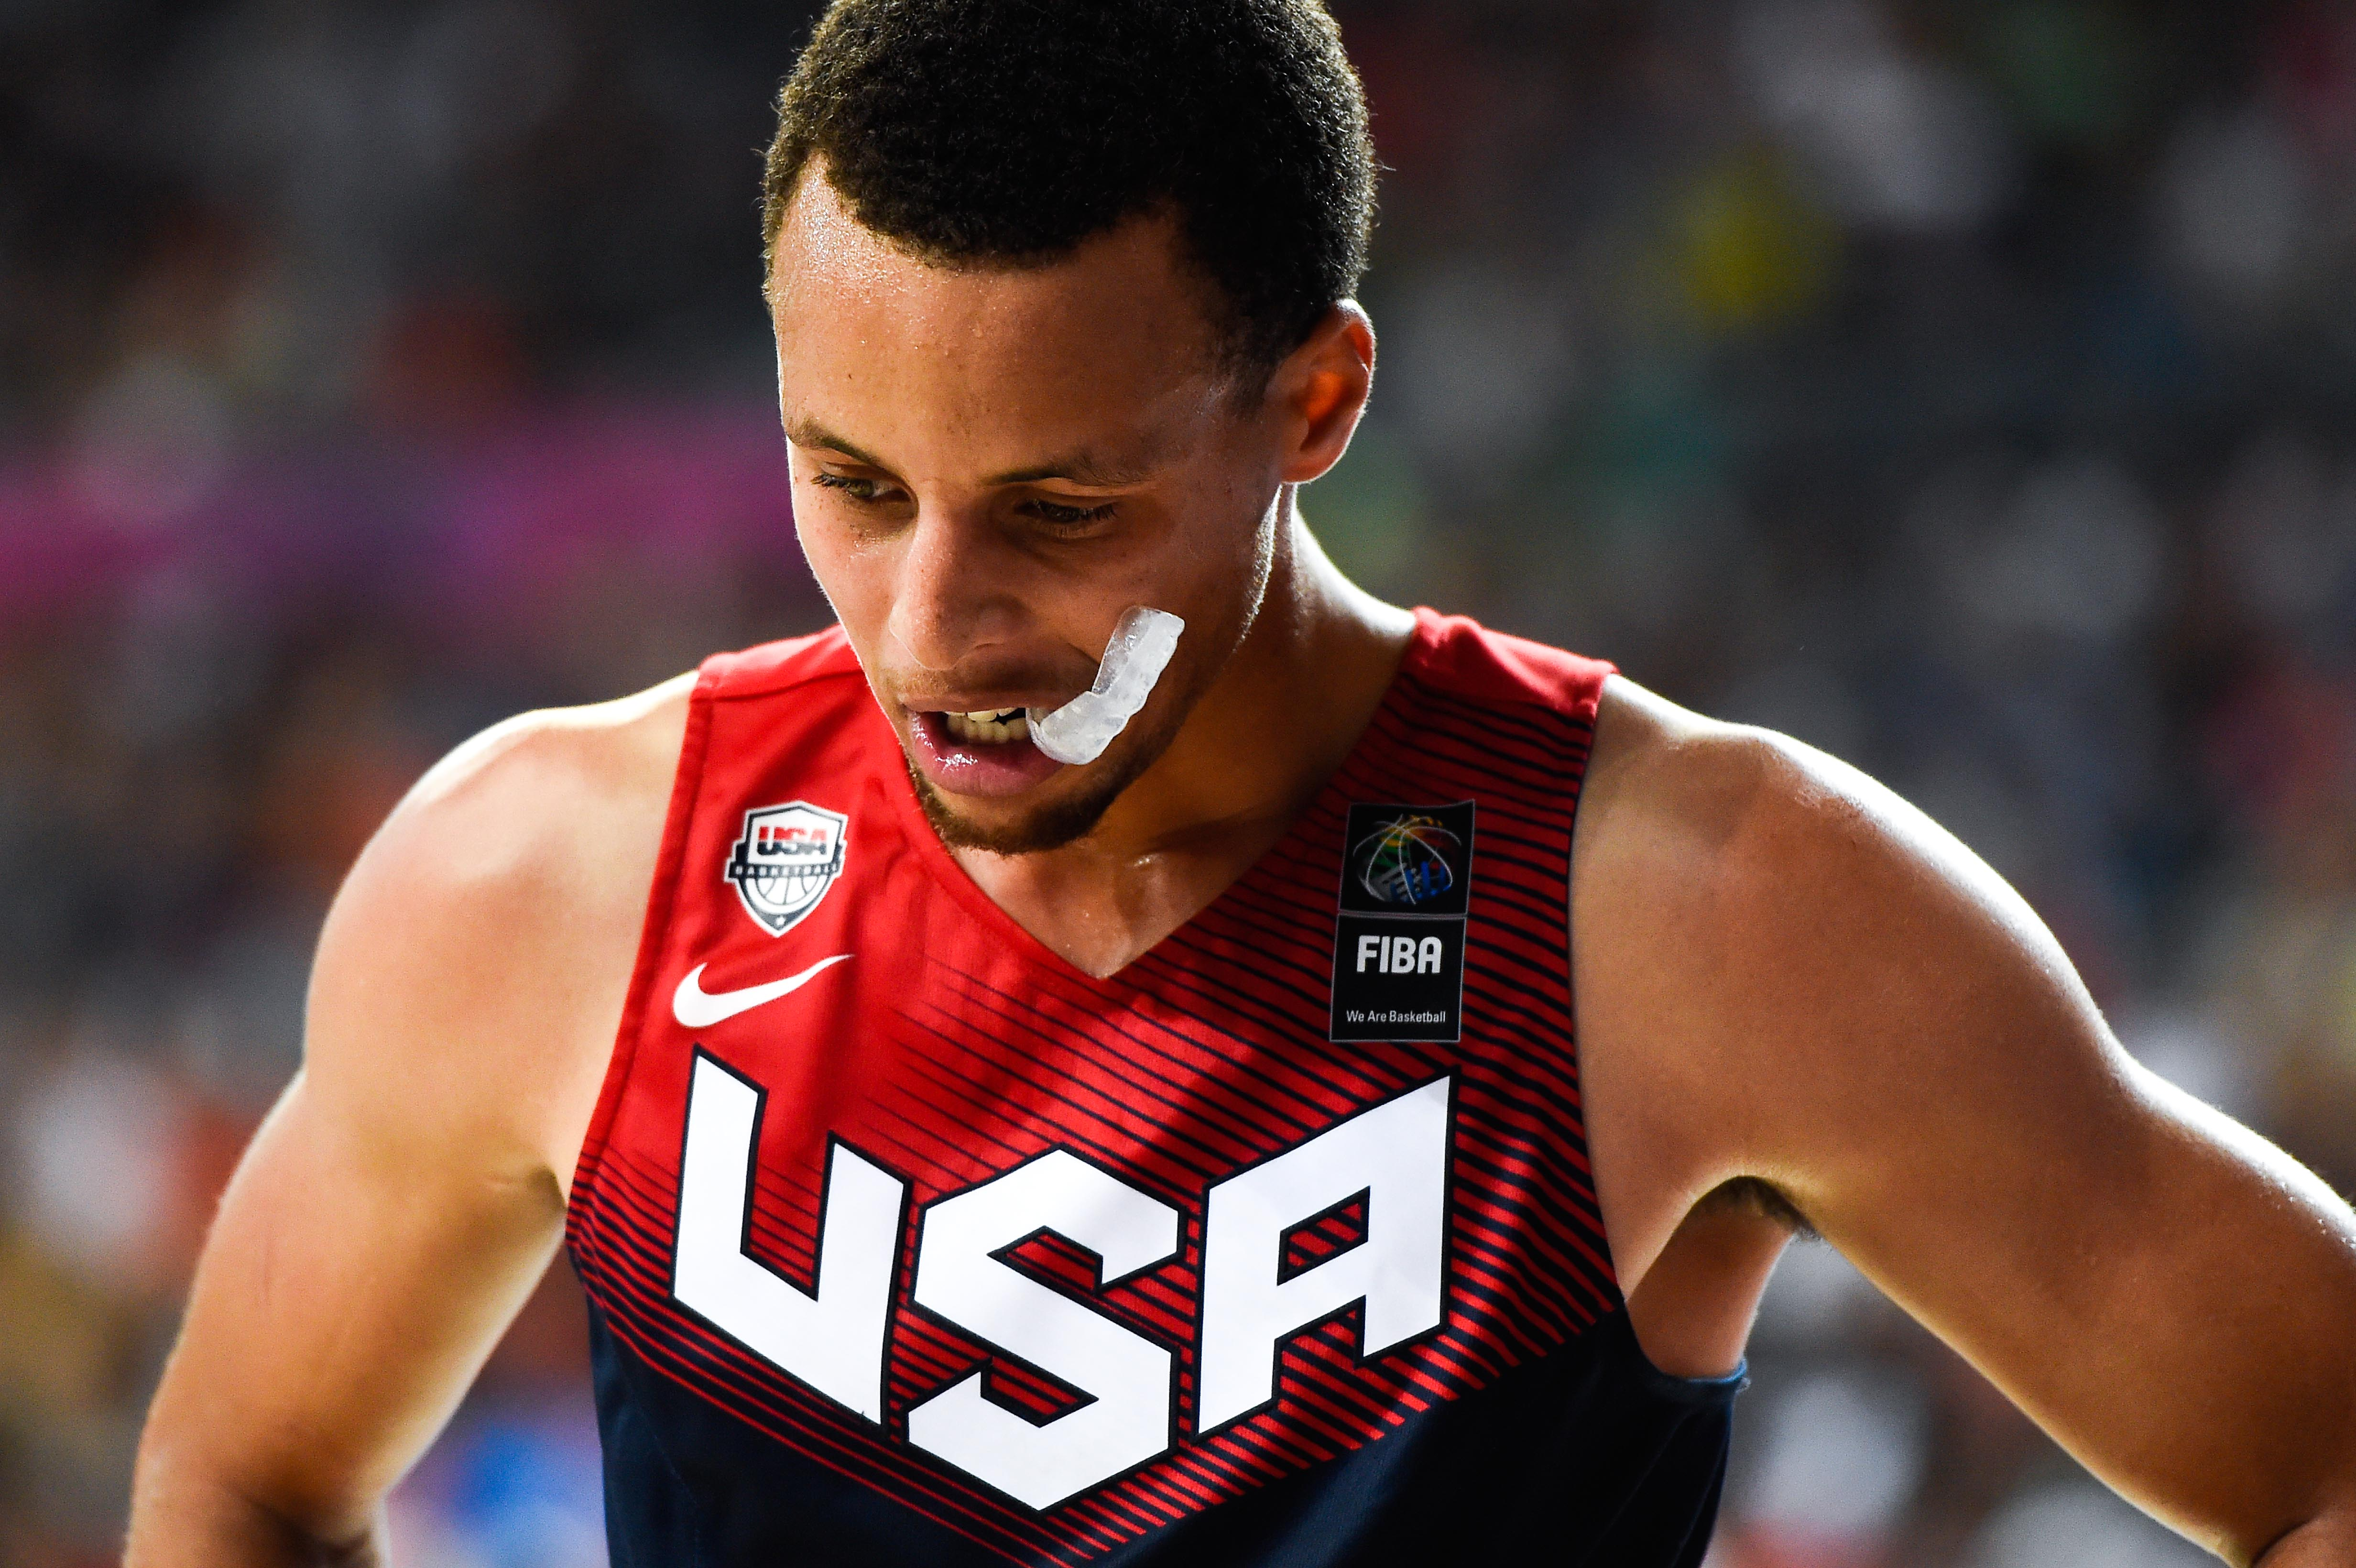 Steph Curry, Damian Lillard, and Klay Thompson are in. Team USA is fine